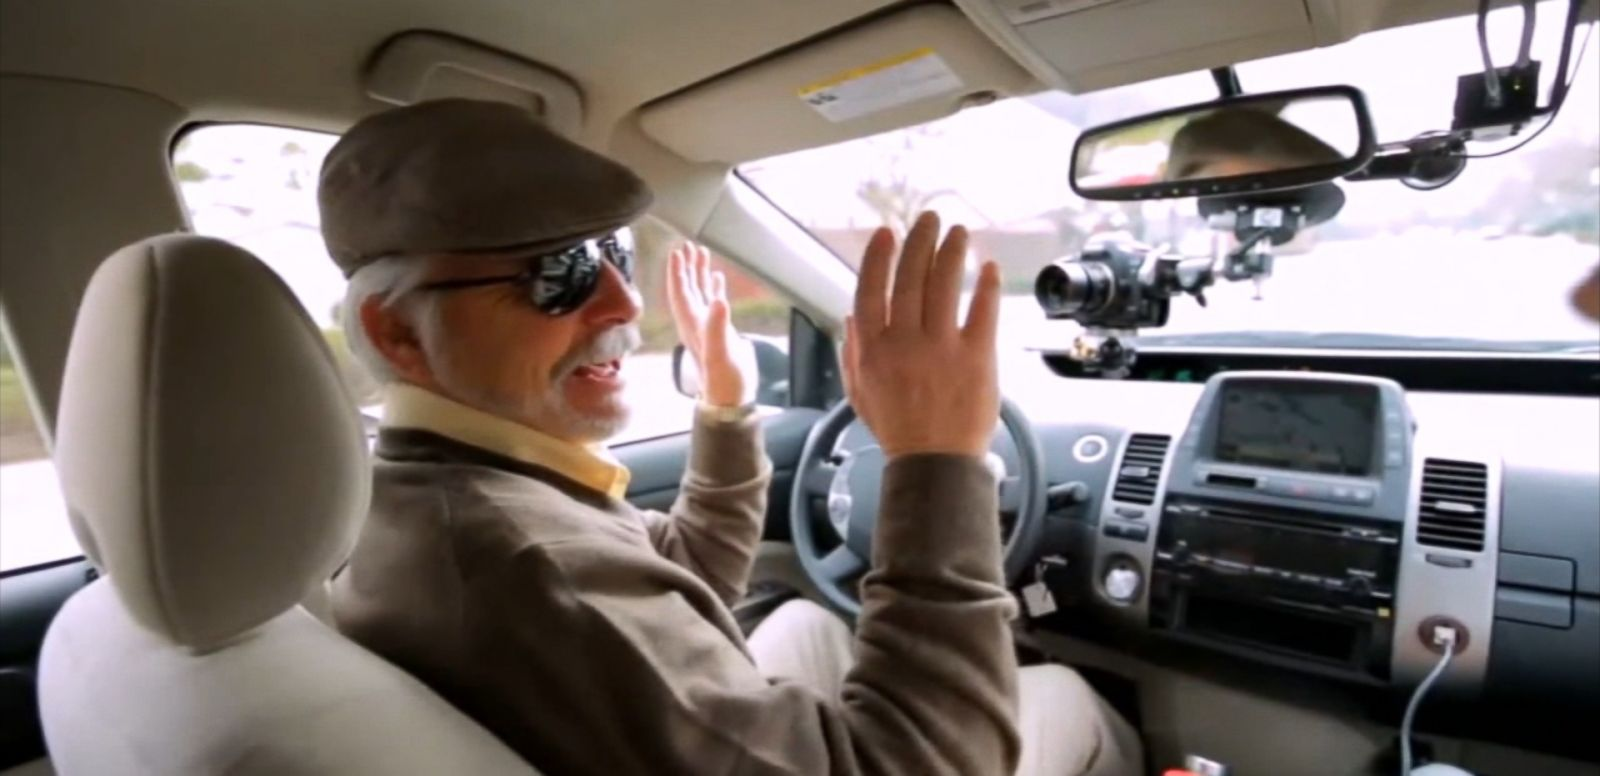 VIDEO: Steve Mahan is giving the company's self-driving car a test ride.